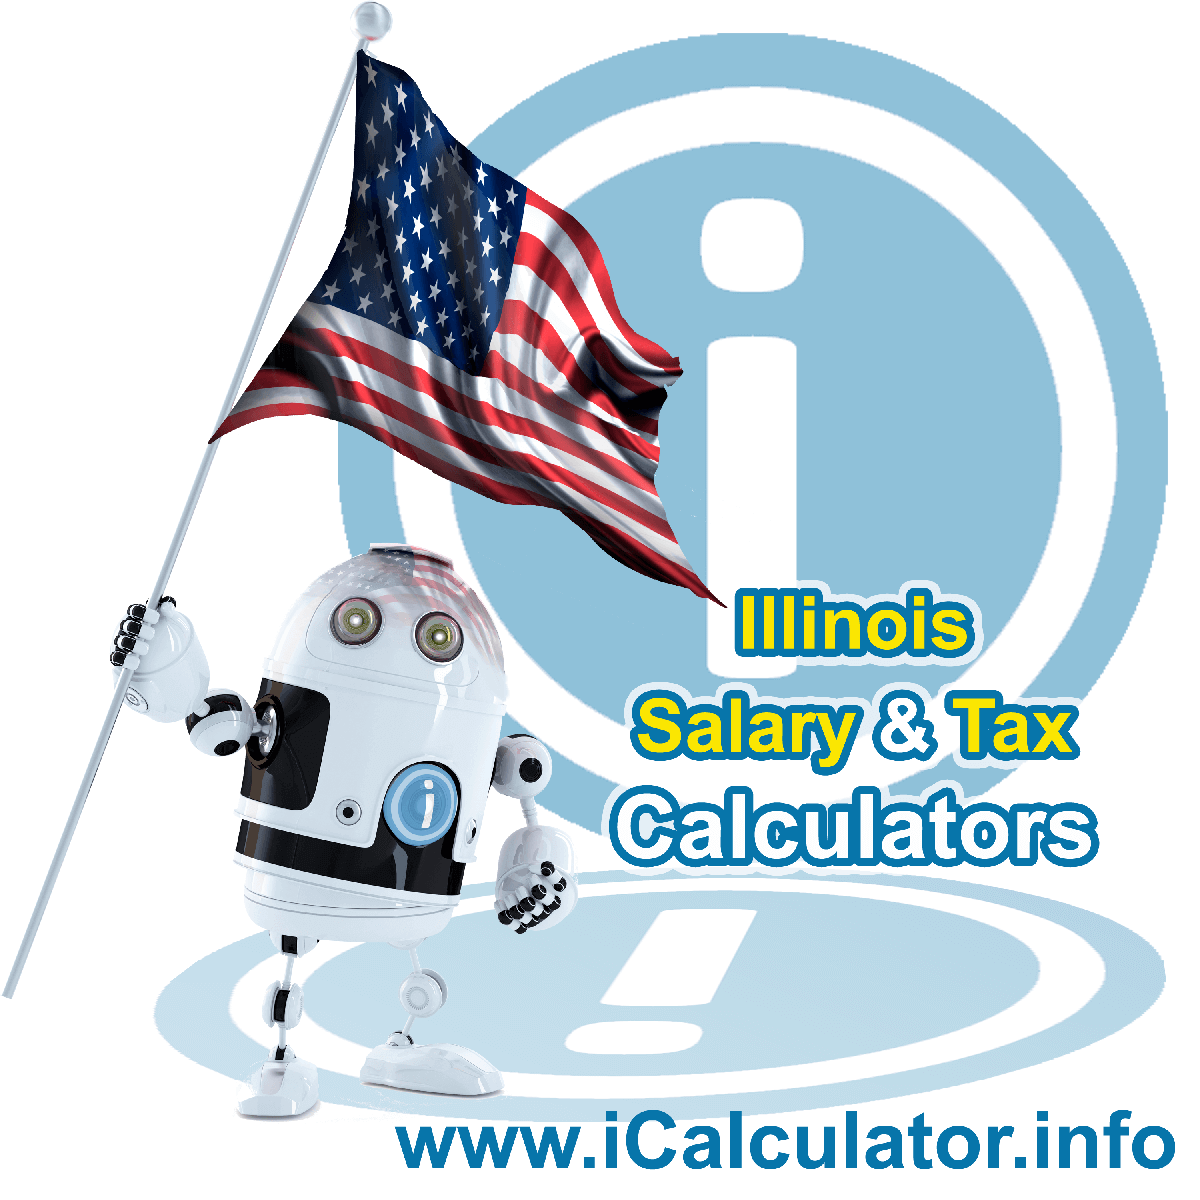 Illinois Salary Calculator 2021 | iCalculator™ | The Illinois Salary Calculator allows you to quickly calculate your salary after tax including Illinois State Tax, Federal State Tax, Medicare Deductions, Social Security, Capital Gains and other income tax and salary deductions complete with supporting Illinois state tax tables